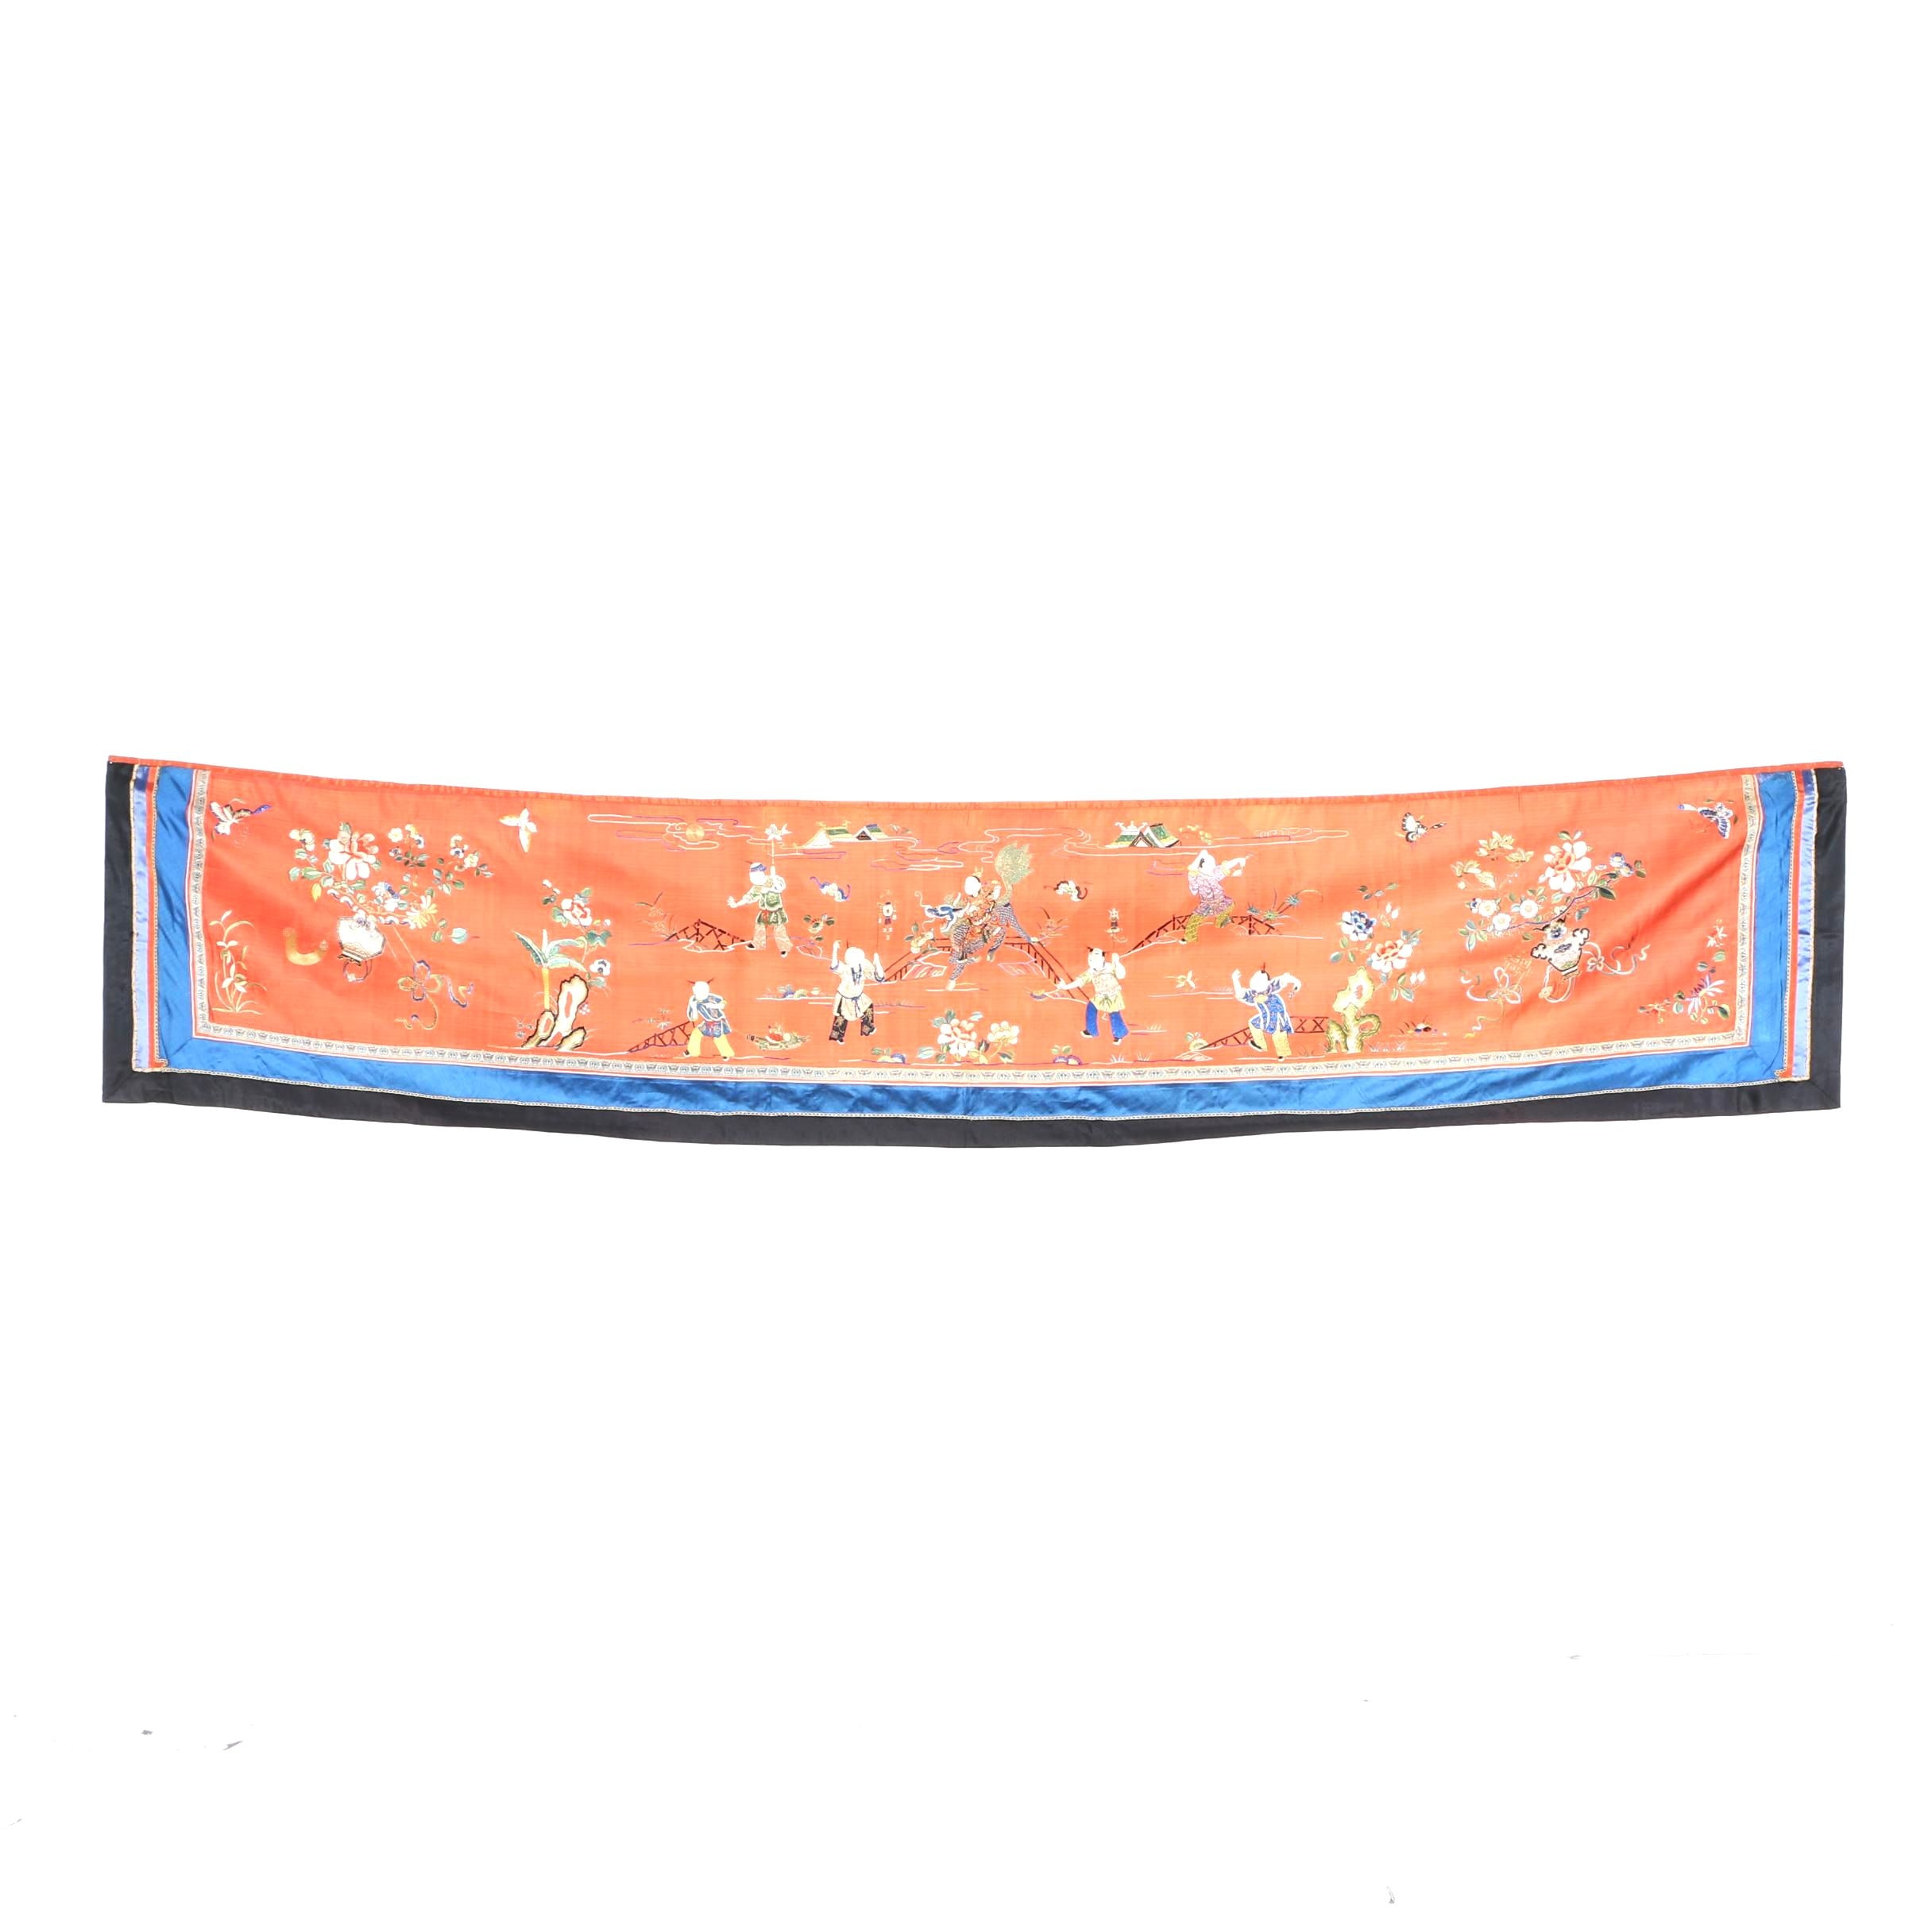 Chinese Embroidered Wall Hanging